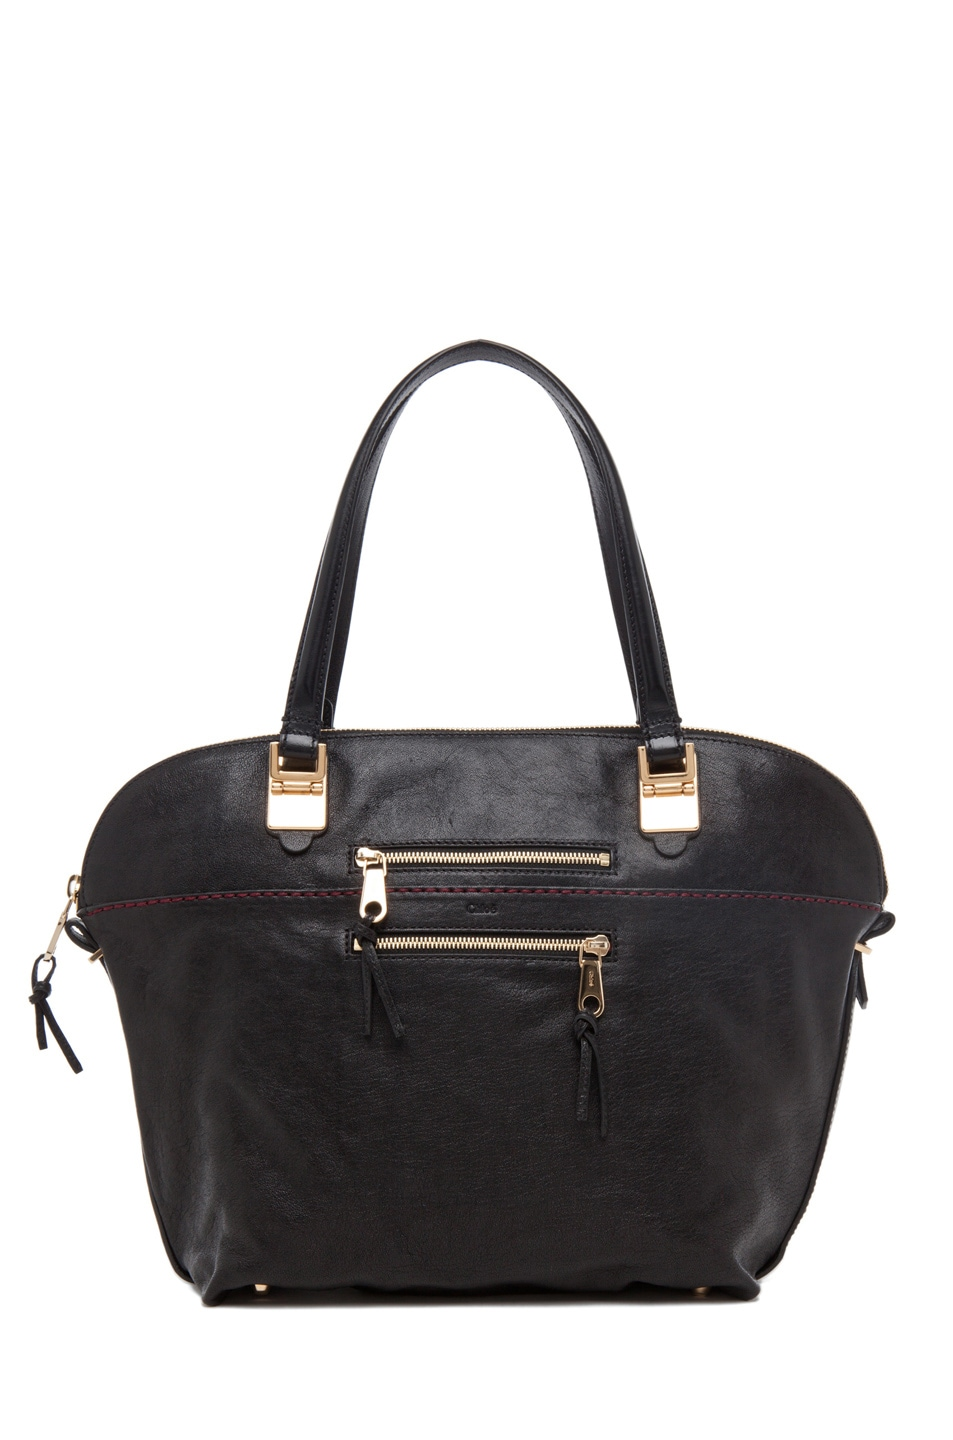 Image 1 of Chloe Large Angie Shoulder Bag in Black